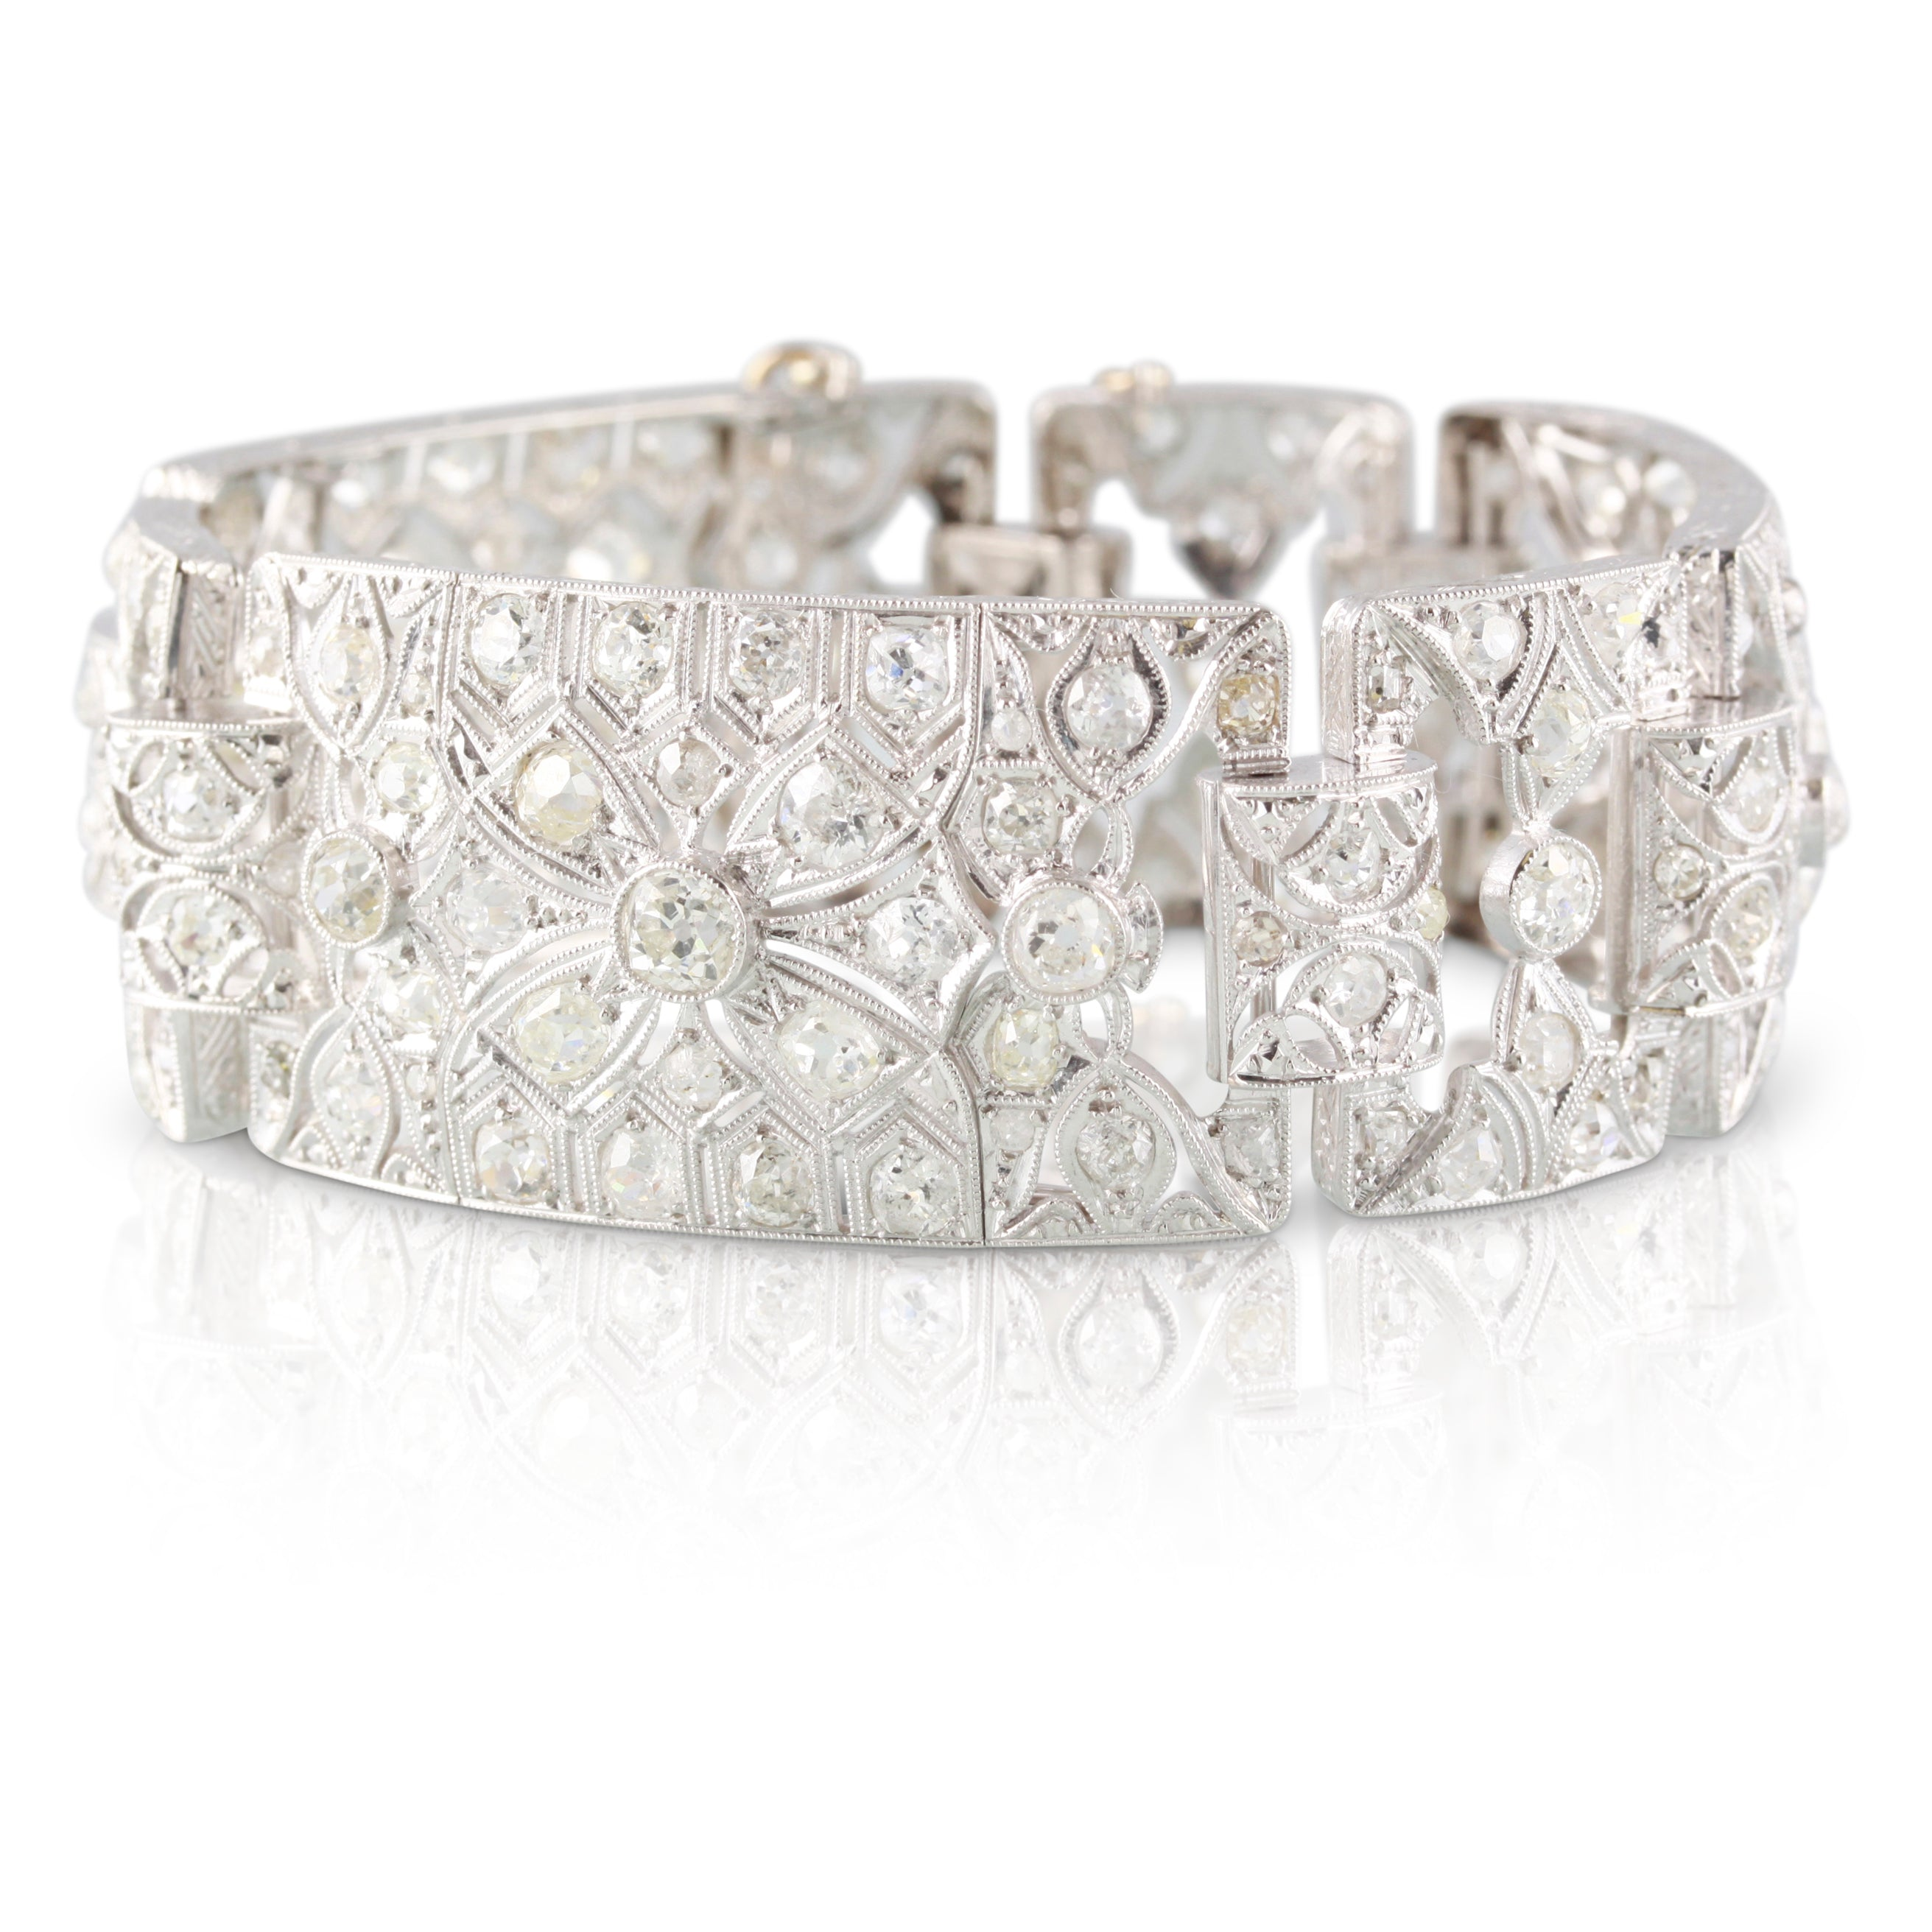 Edwardian Era Diamond Bracelet | The Elias